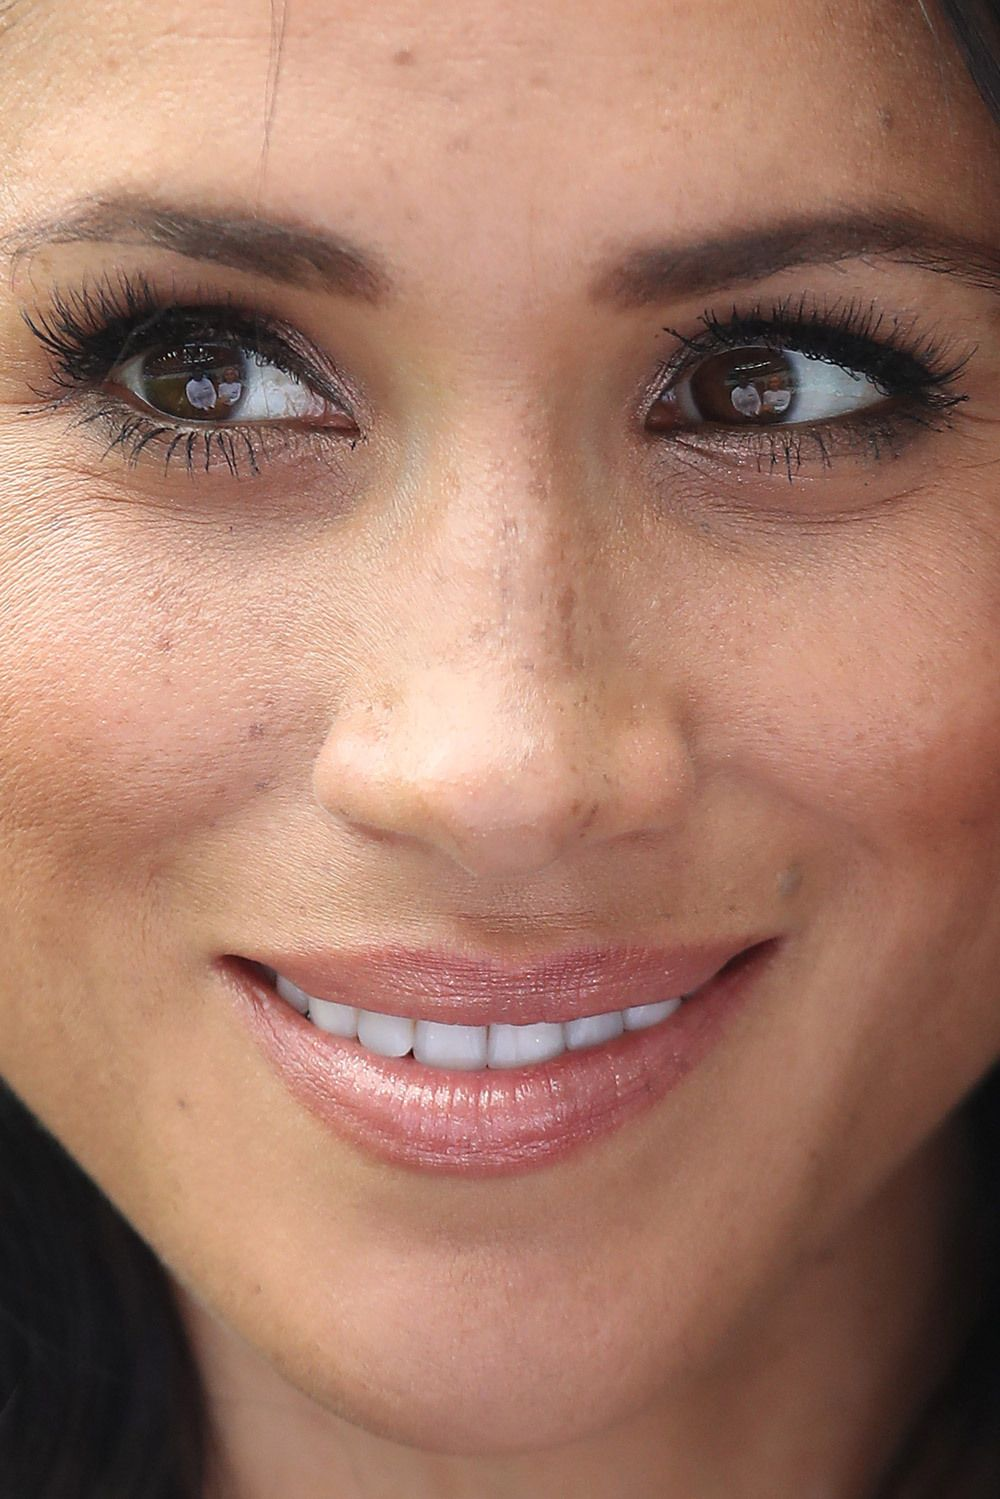 fb4b5371d20 Celebrity Close-Up: Seeing celeb faces this close can surprising ...